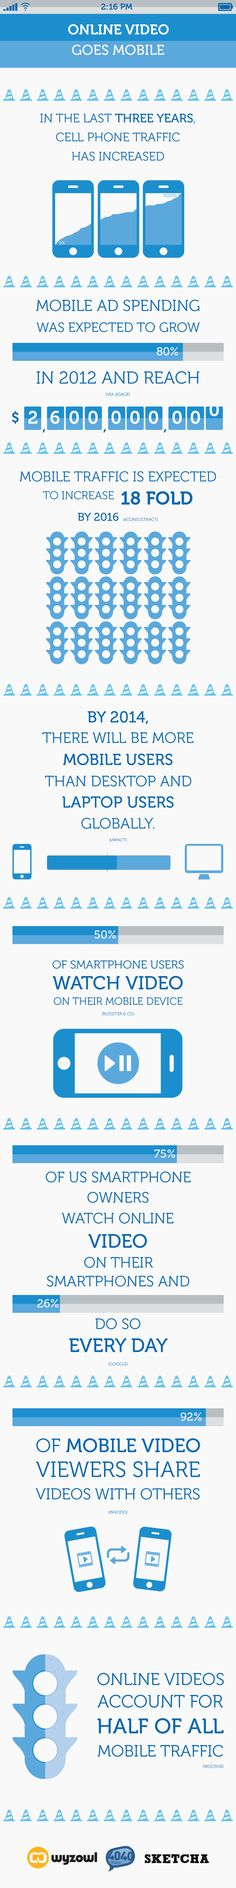 Online Video Goes Mobile #infografia #infographic #marketing